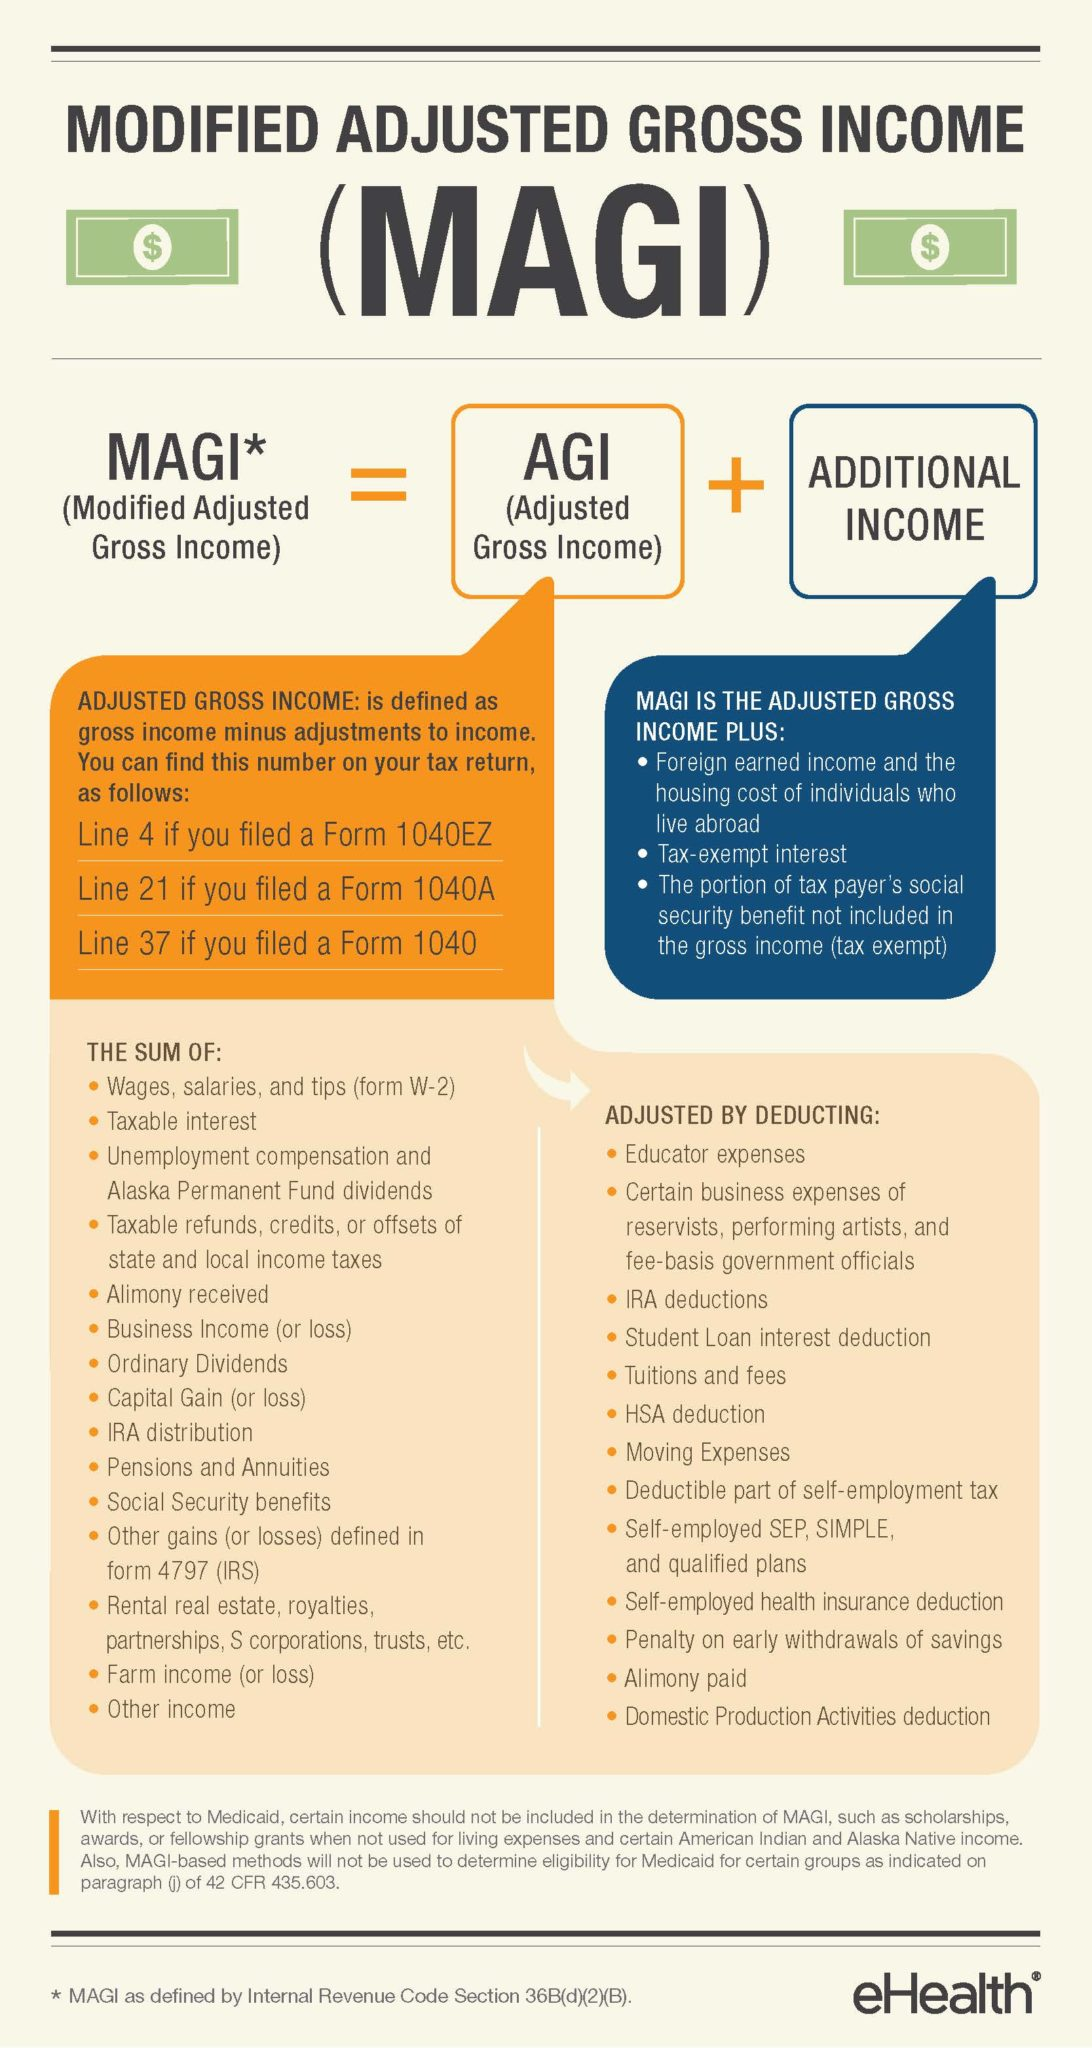 Household Income & Subsidy Eligibility Under Obamacare